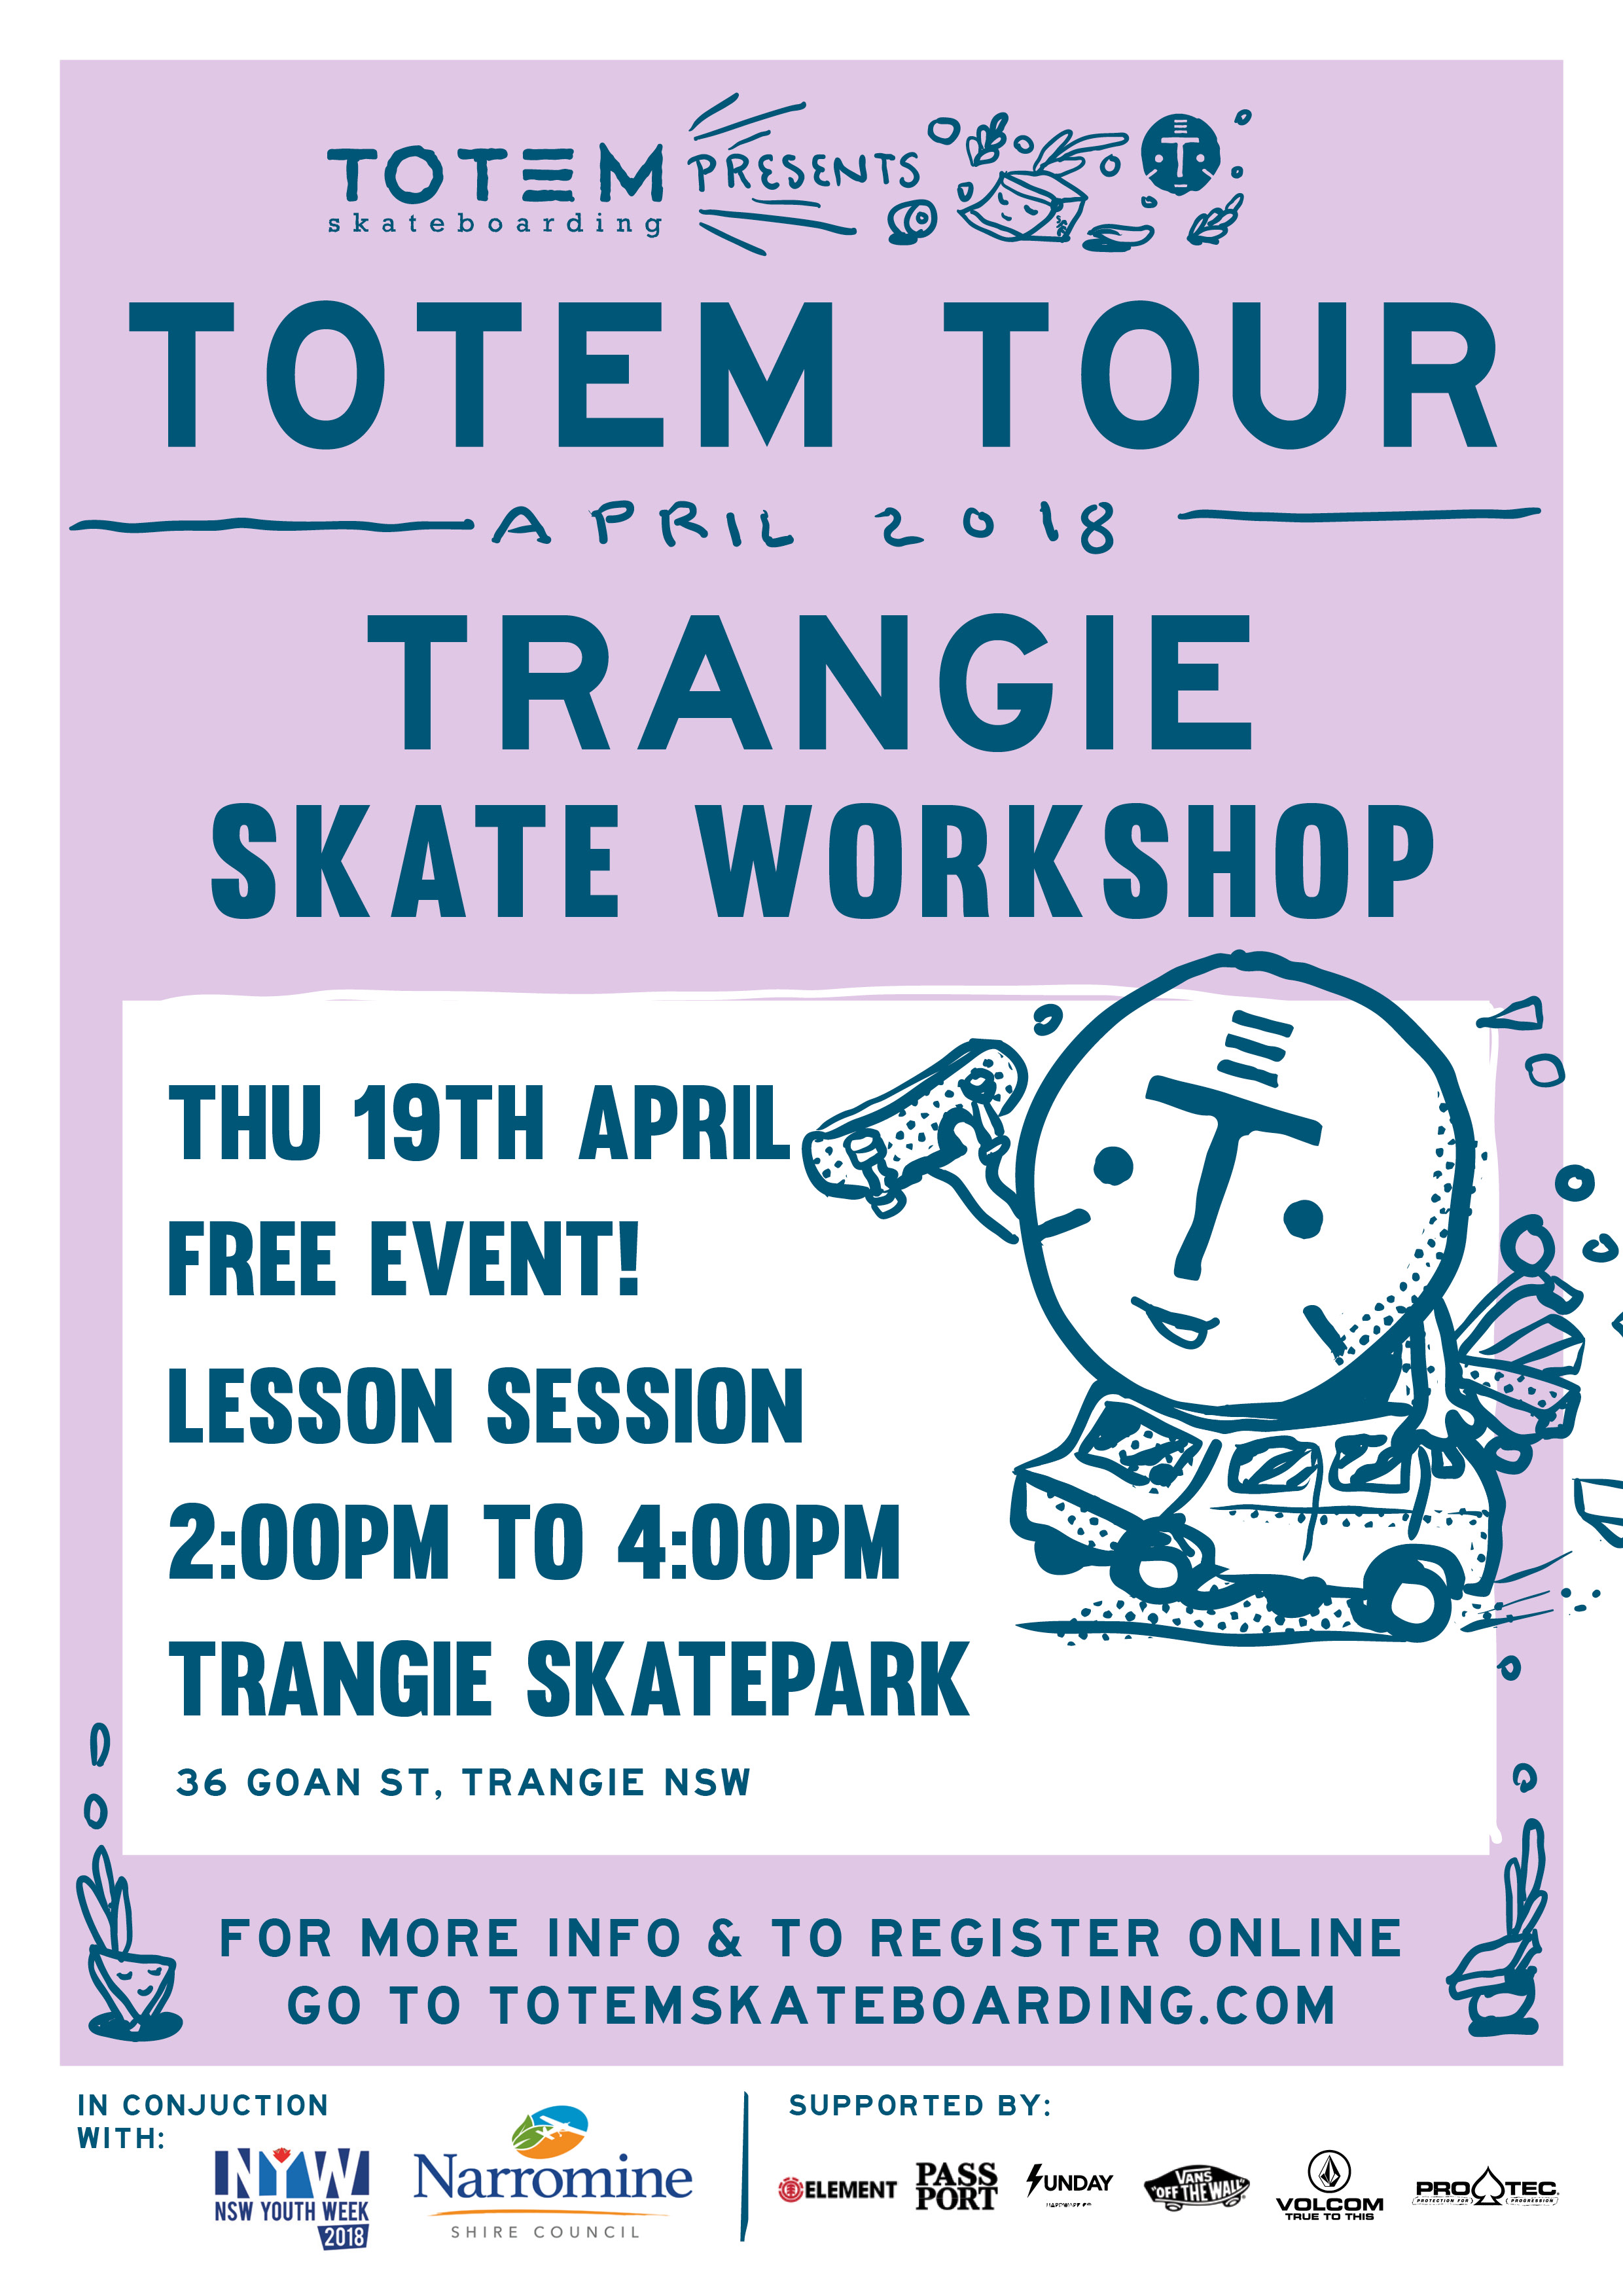 Trangie Skate Workshop - Totem Tour